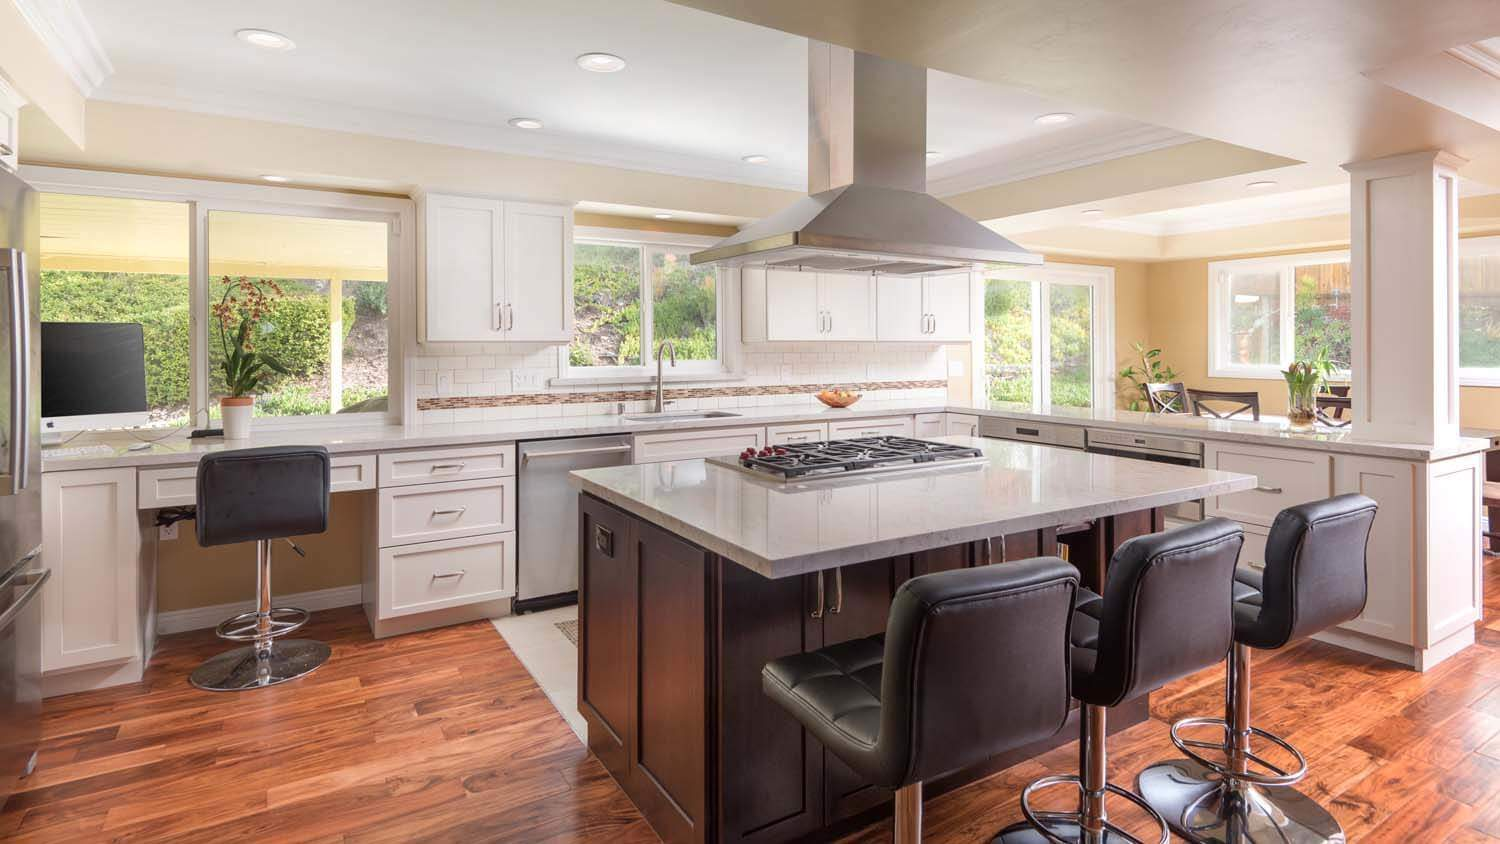 Gorgeous Kitchen Renovation In Potomac Maryland: Open Versus Closed Kitchen Remodel